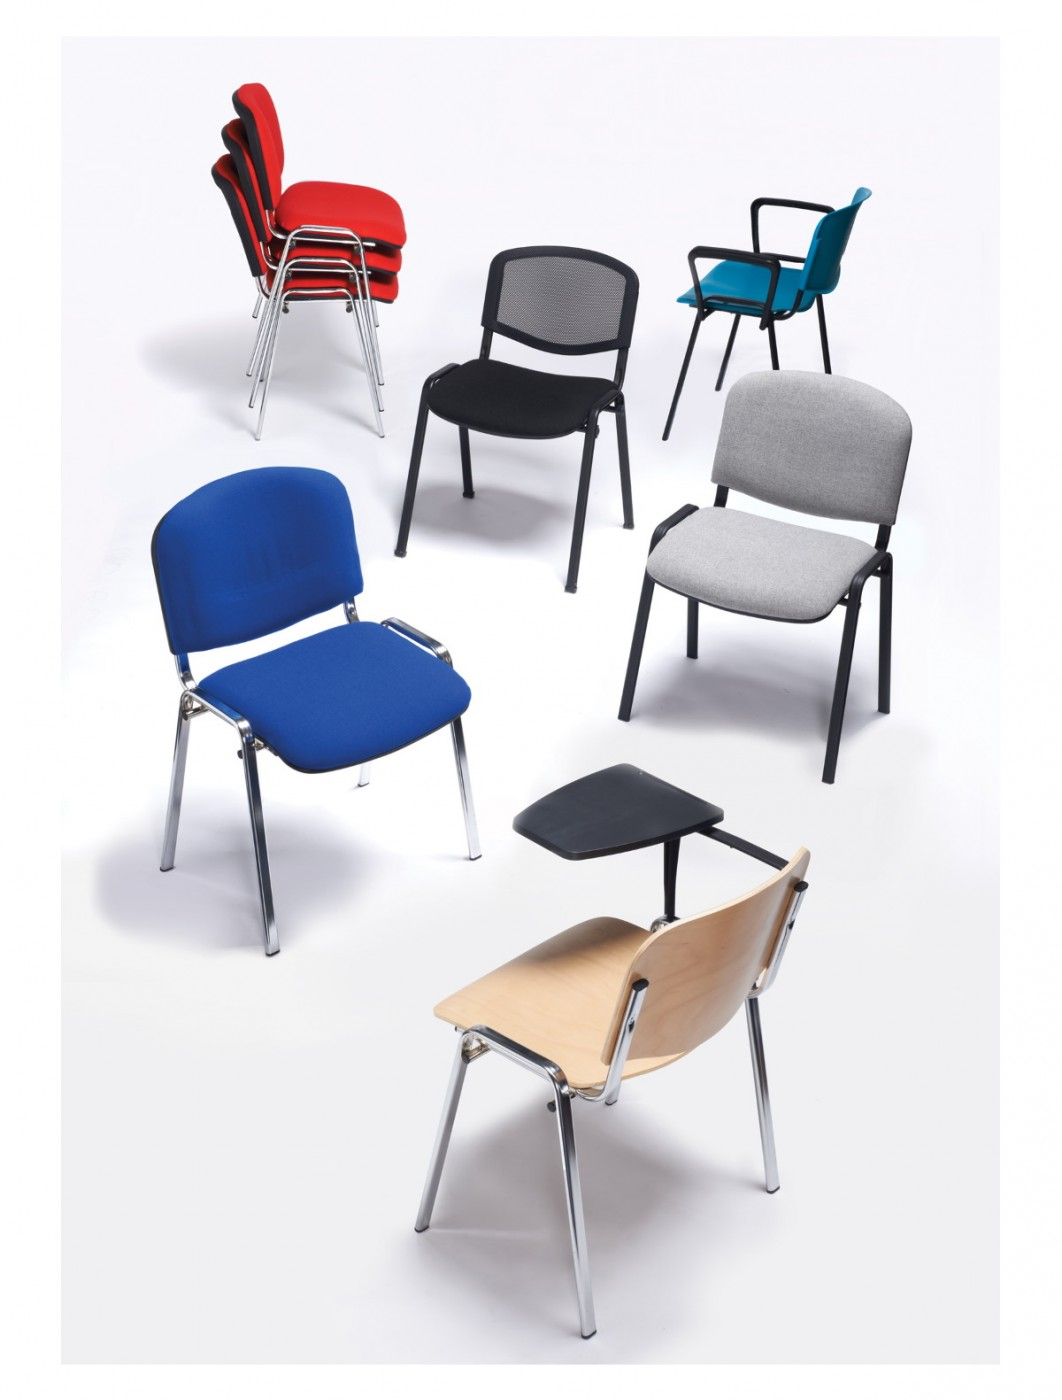 Stackable Meeting Room Seat - 4 Pack Taurus TAU40003 BOXTAU3